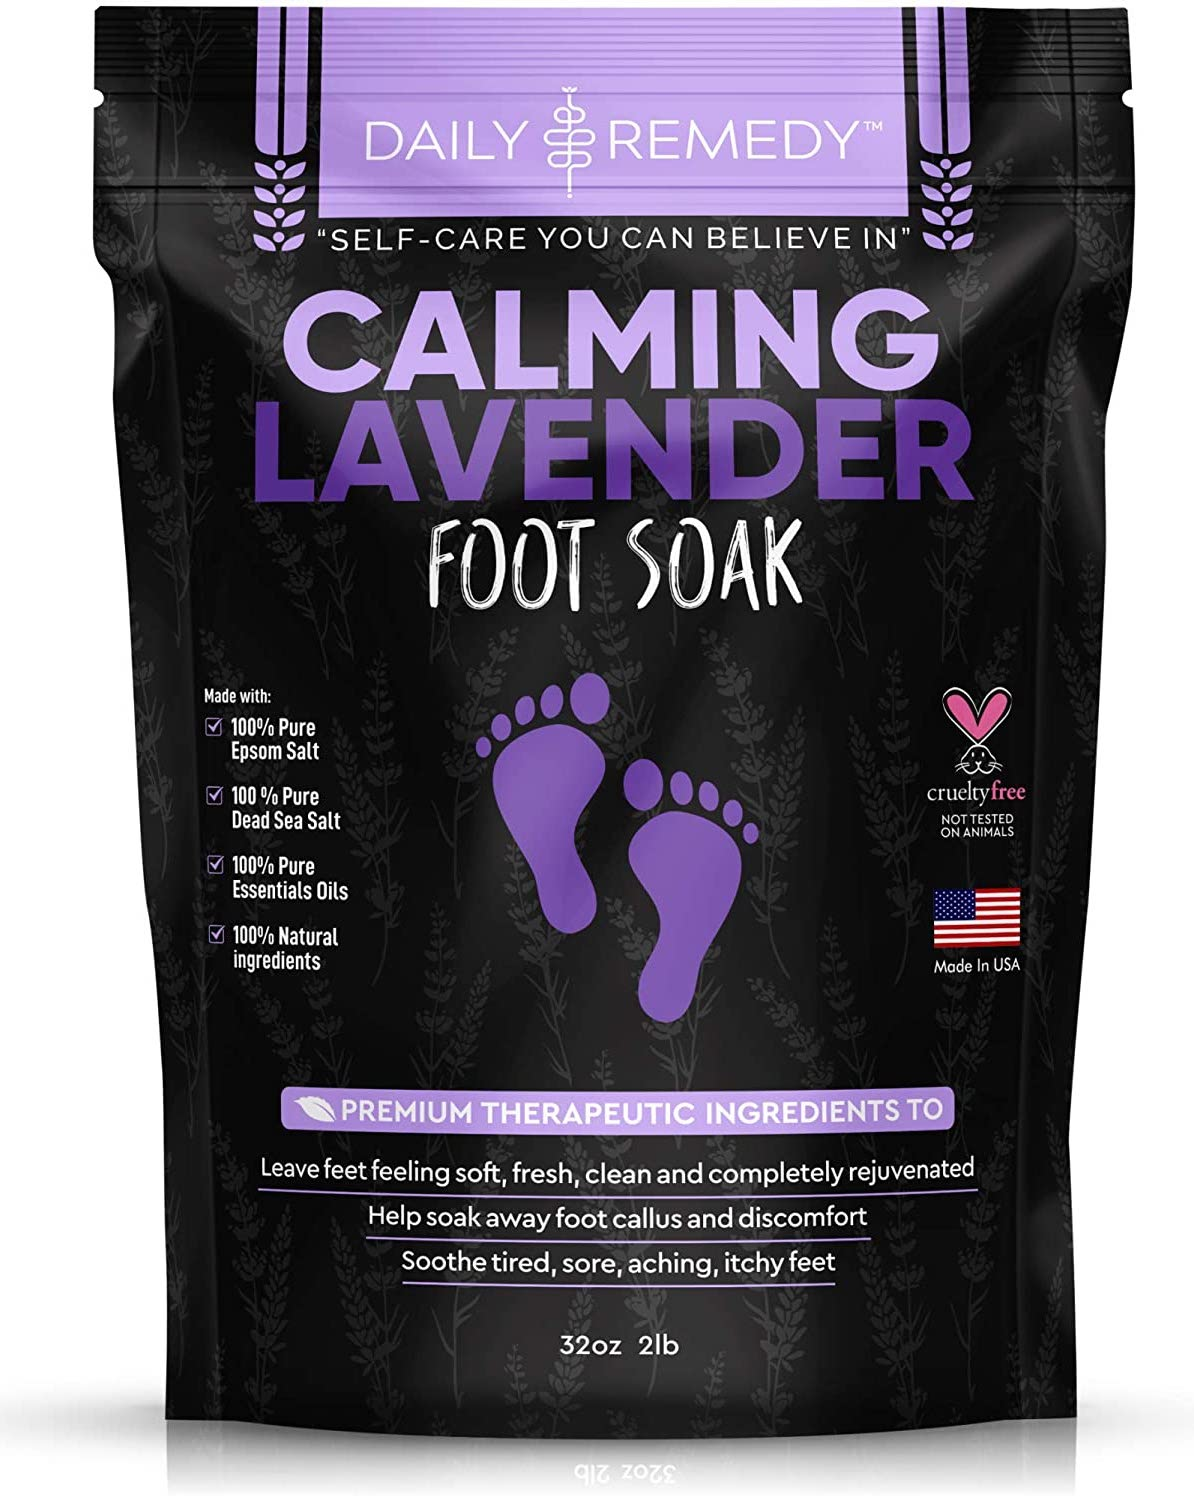 Calming Lavender Foot Soak with Epsom Salt